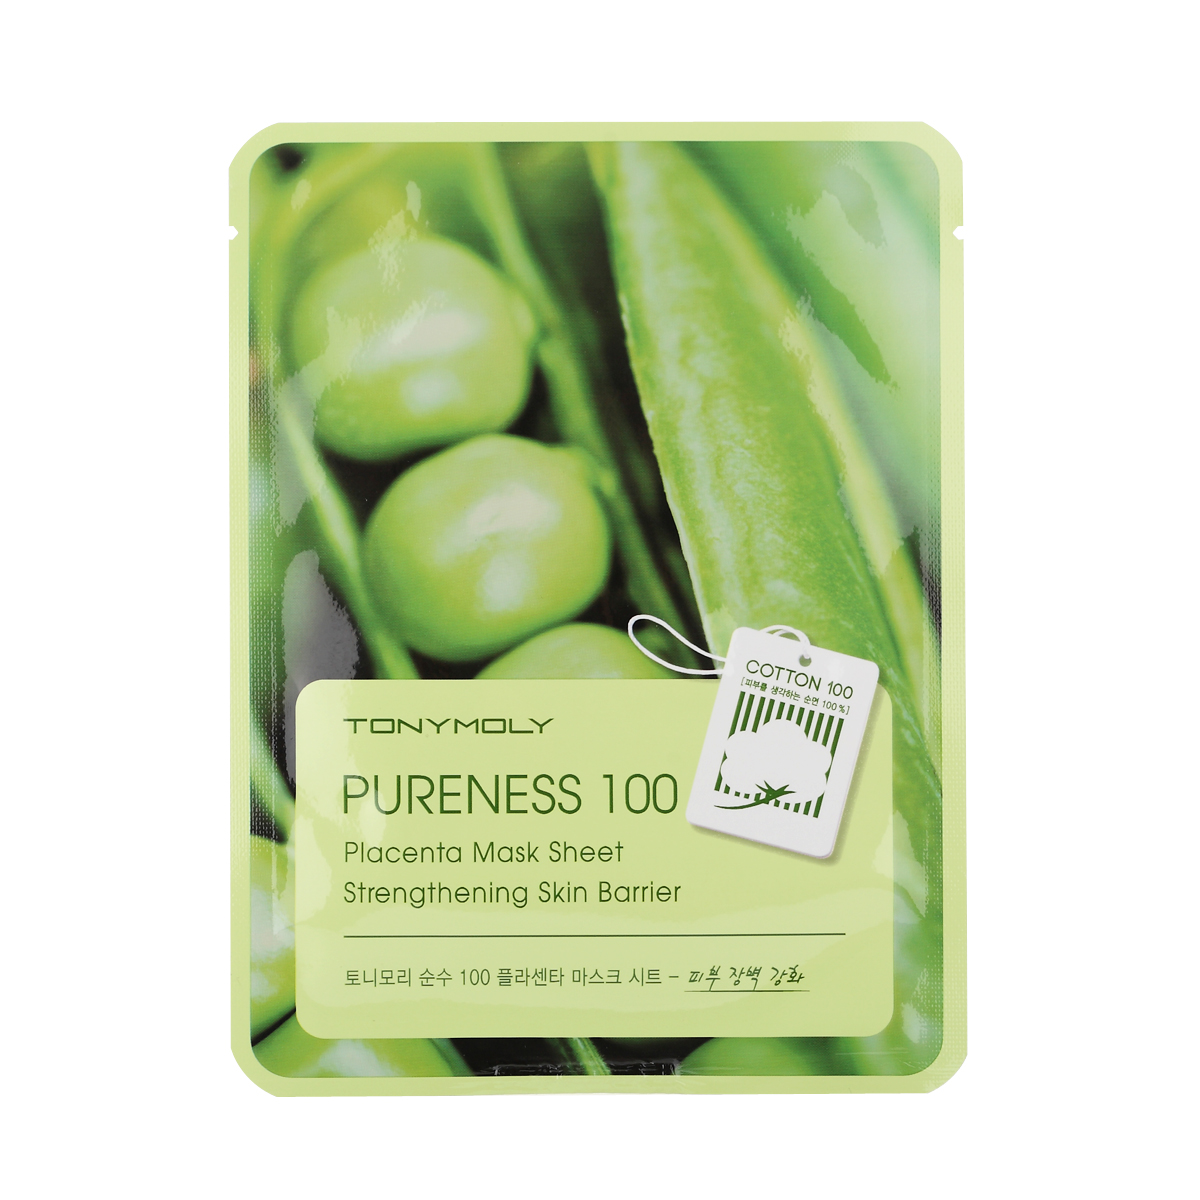 TonyMoly Тканевая маска с экстрактом растительной плаценты Pureness 100 Placenta Mask Sheet, 21 мл тканевая маска tony moly pureness 100 shea butter mask sheet объем 21 мл